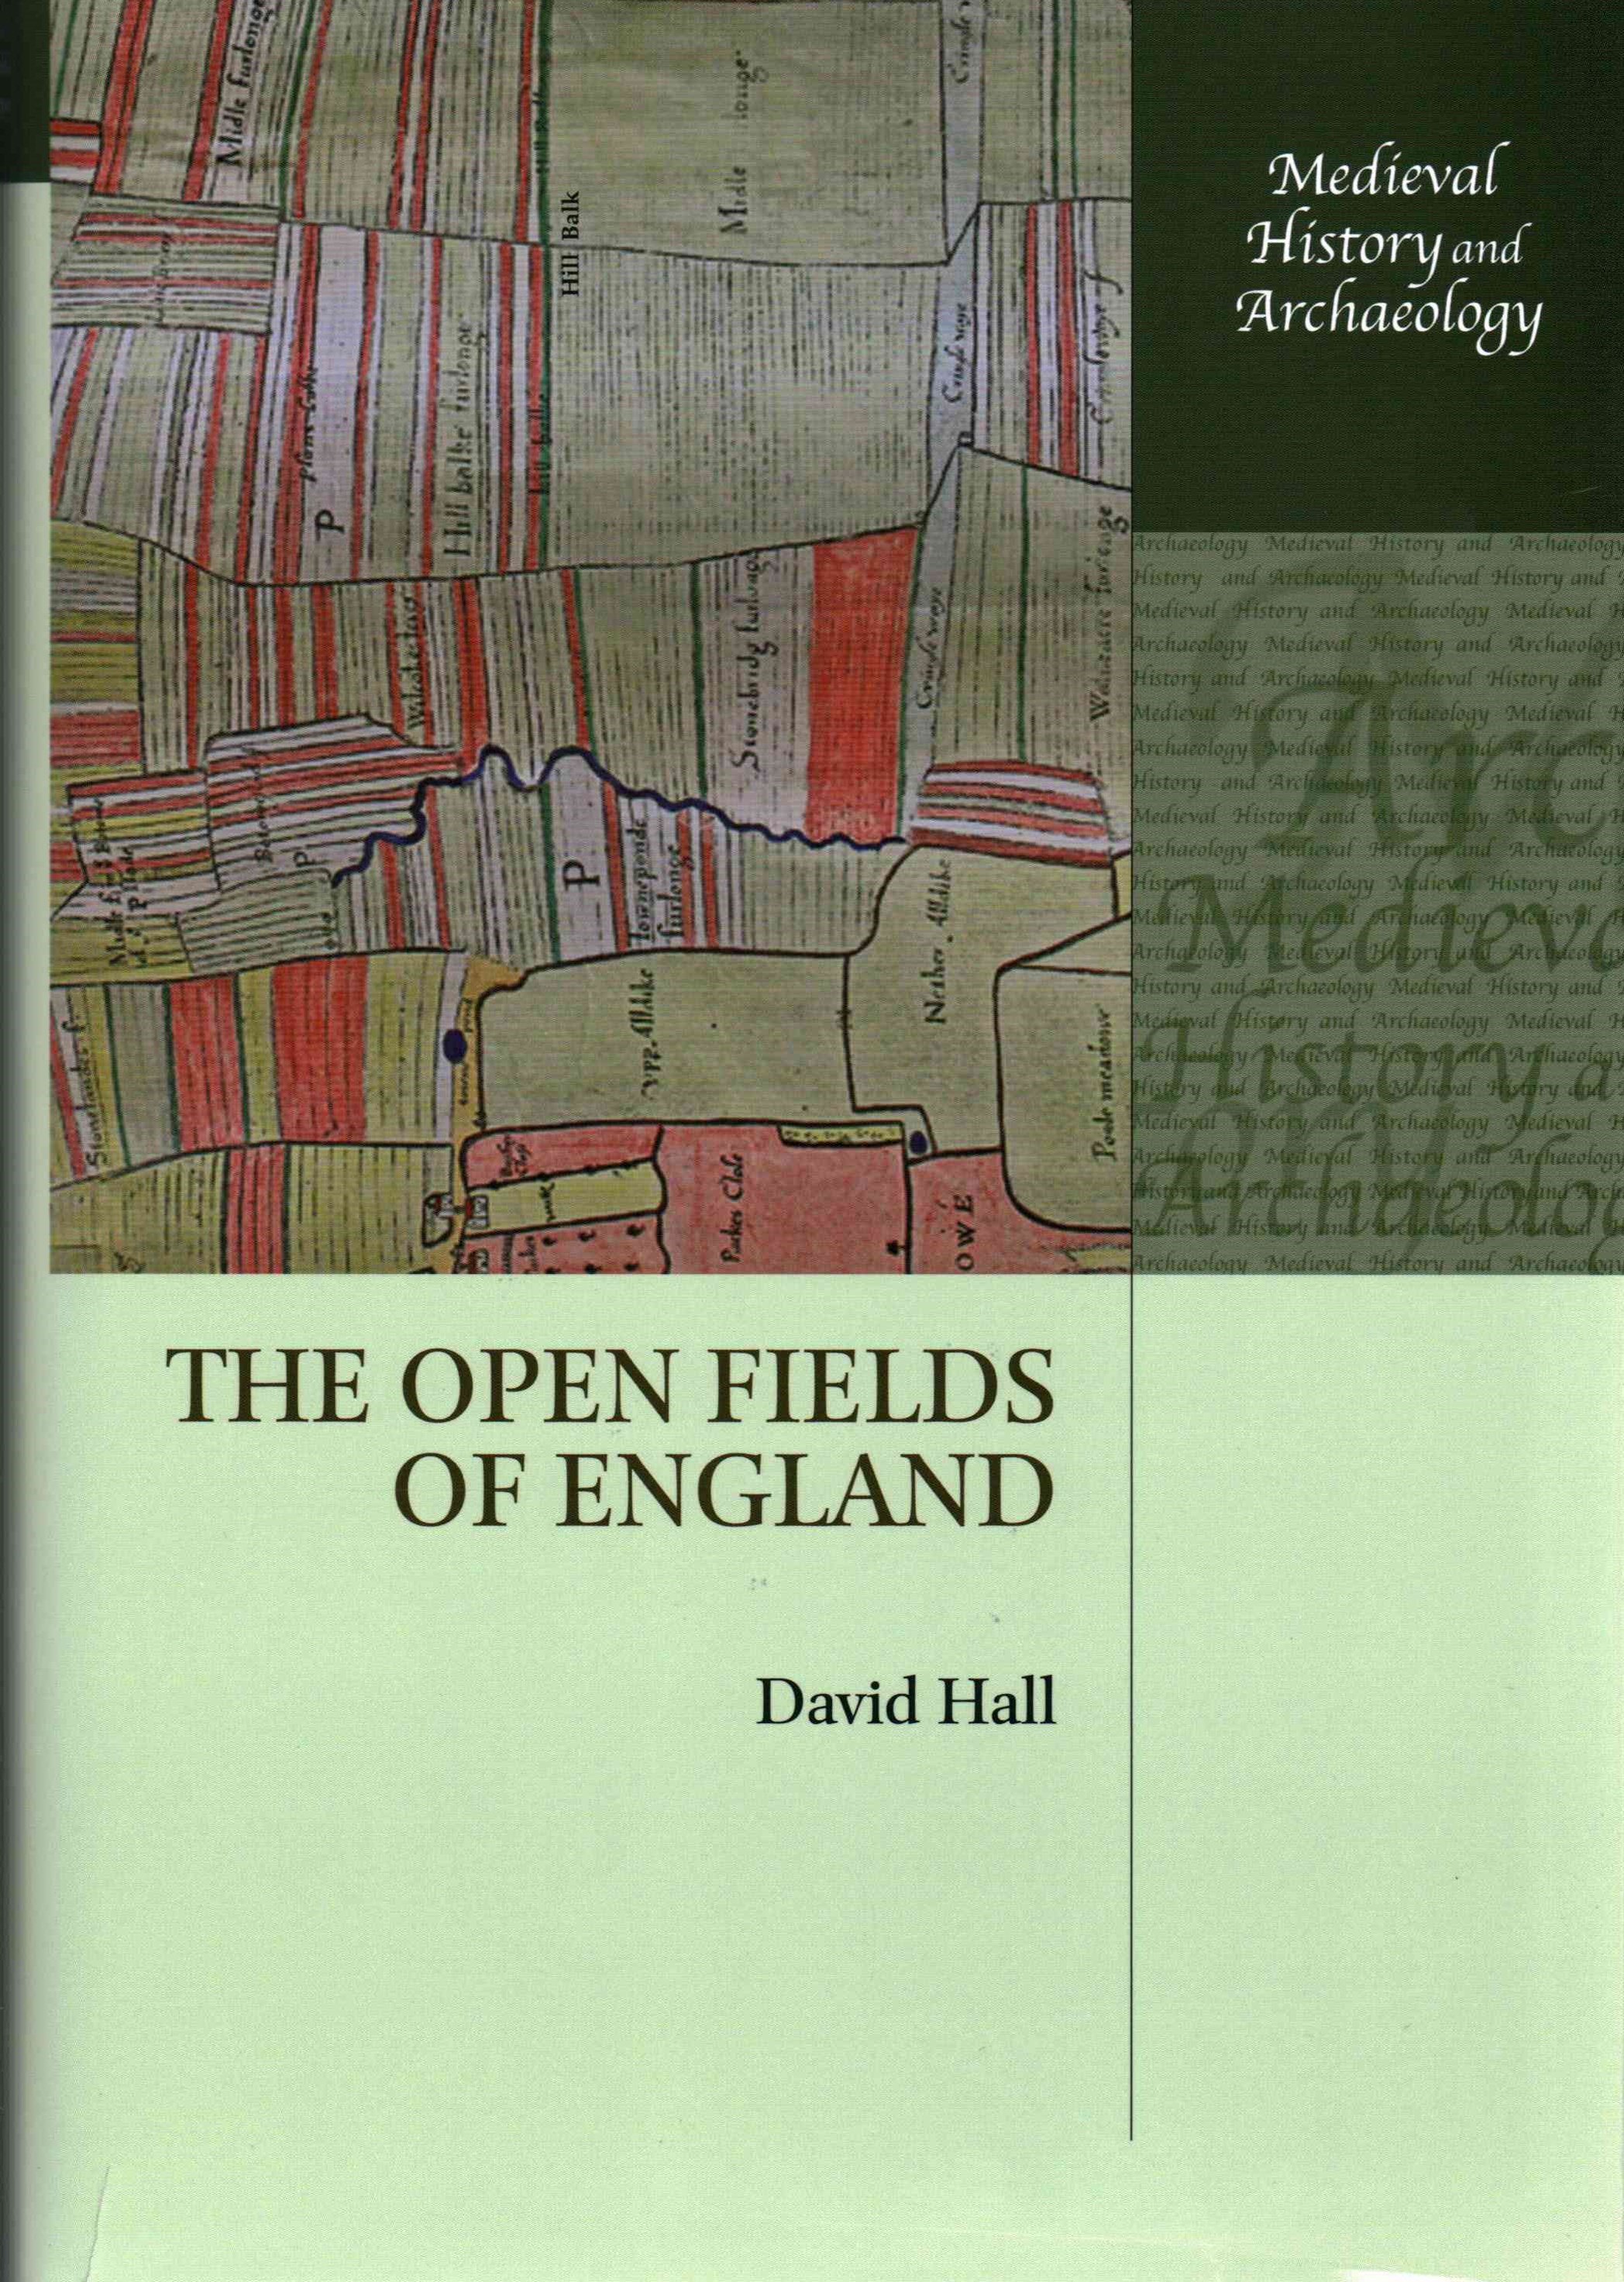 The Open Fields of England